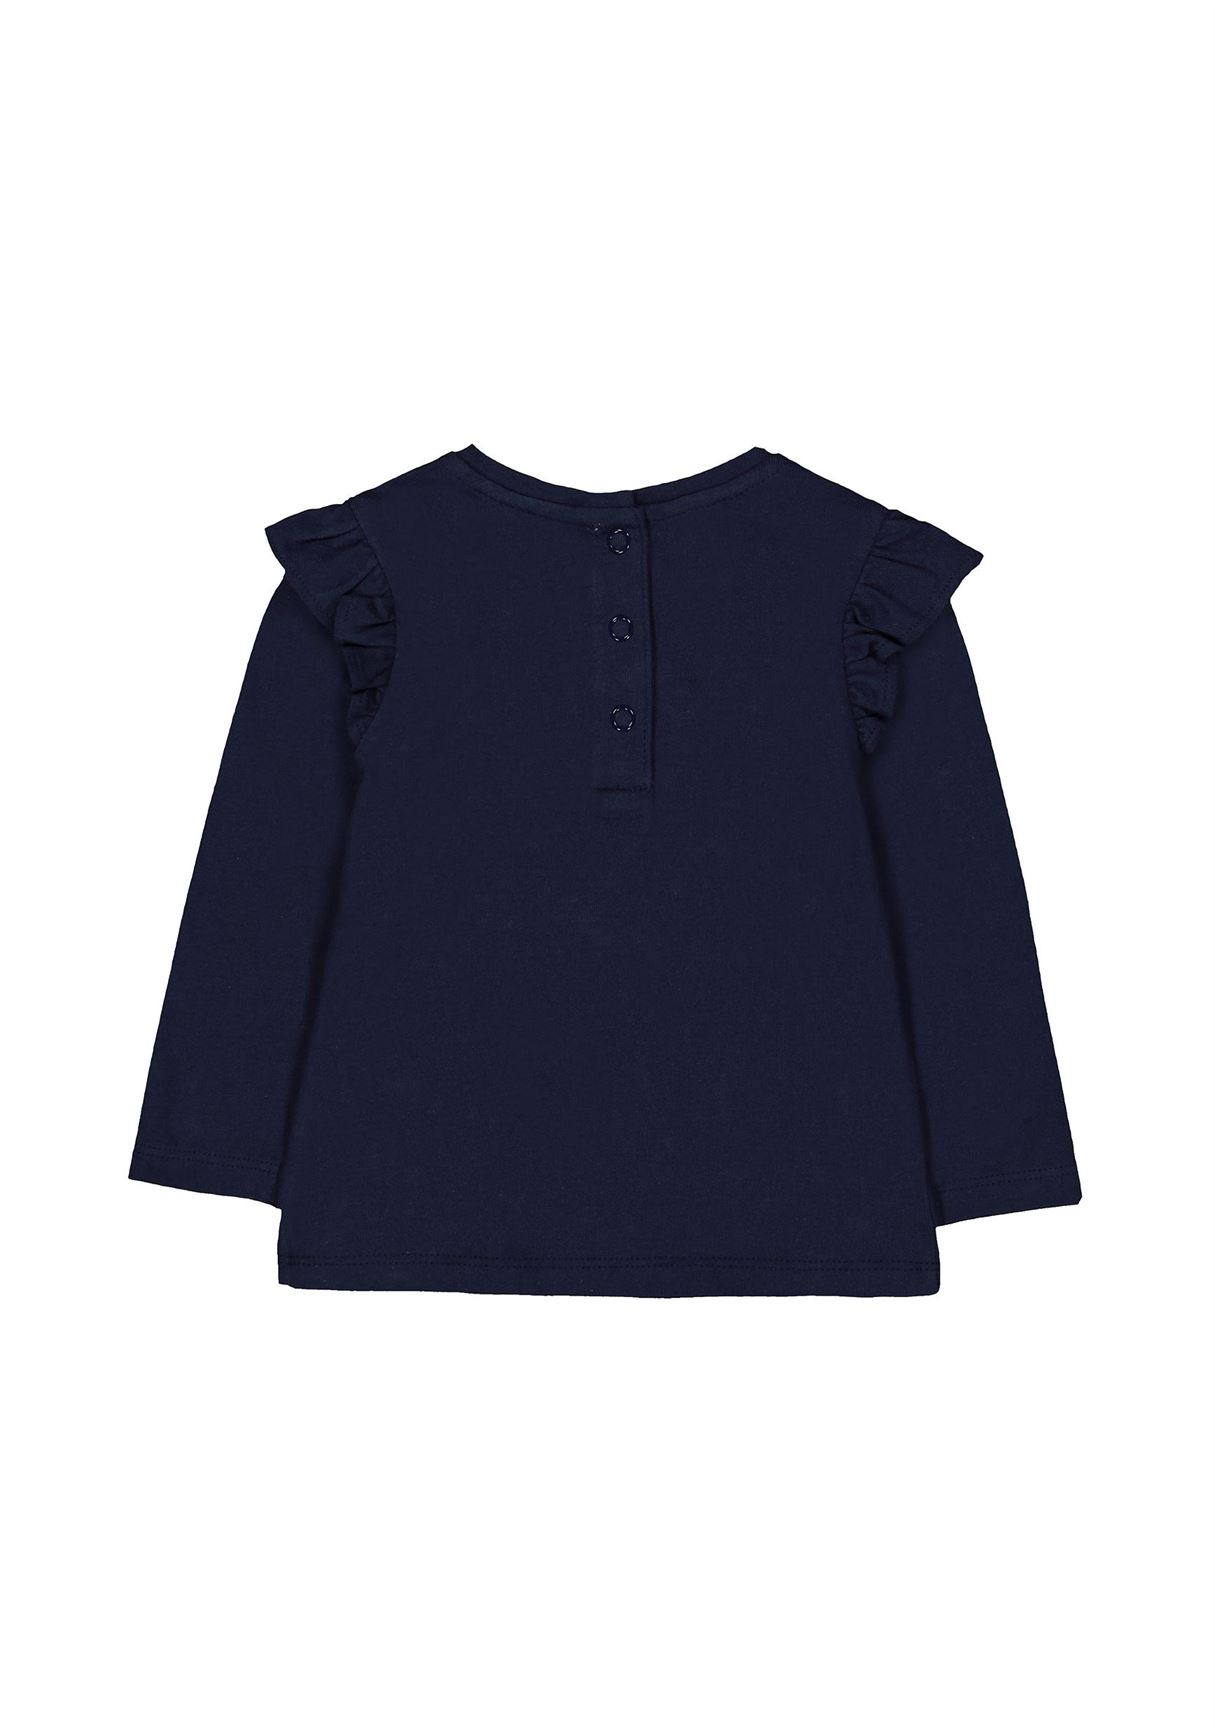 Mothercare Girls Navy Embroidered T-Shirt